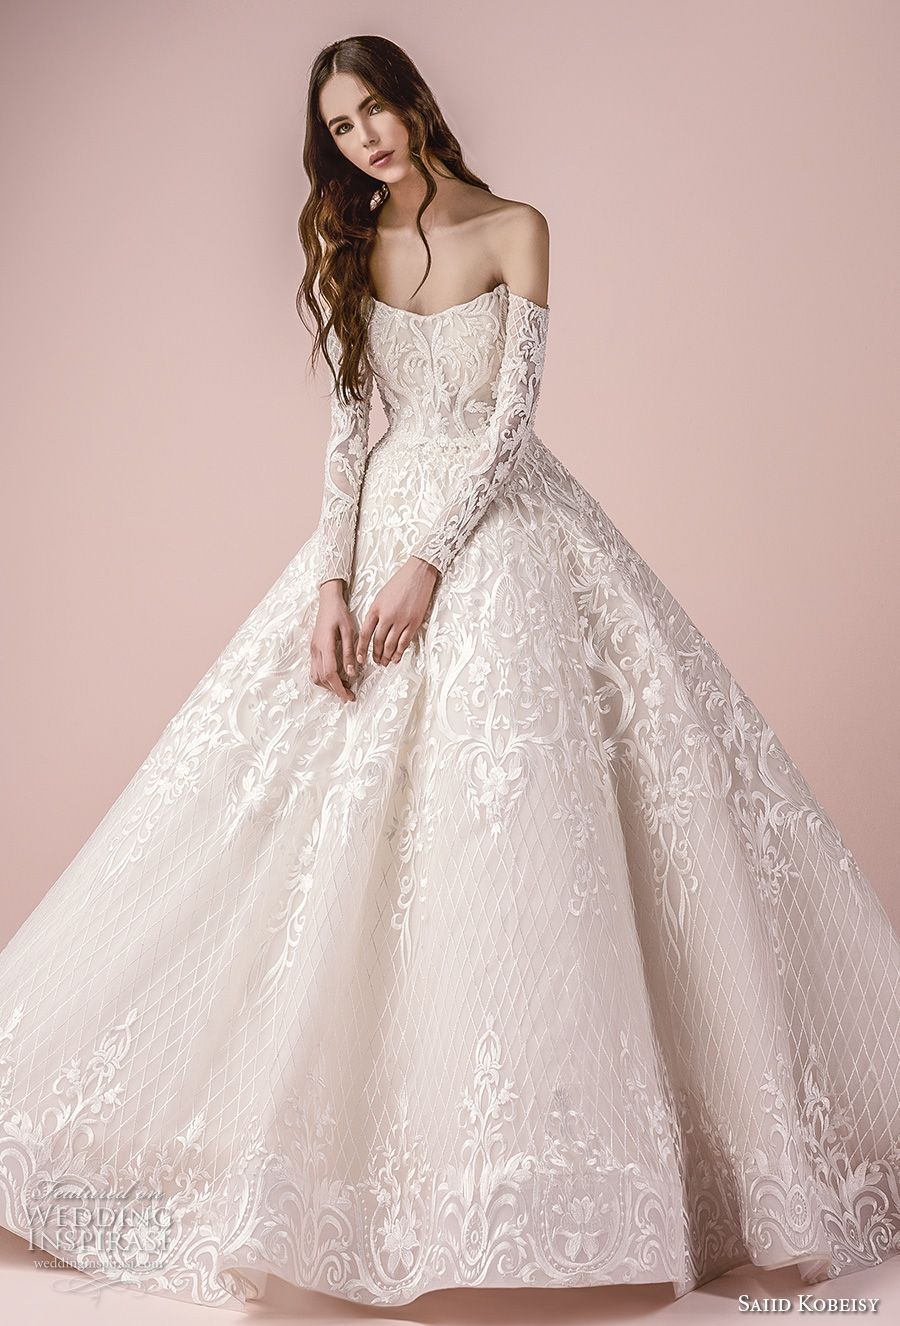 Saiid kobeisy wedding dresses bridals pinterest wedding